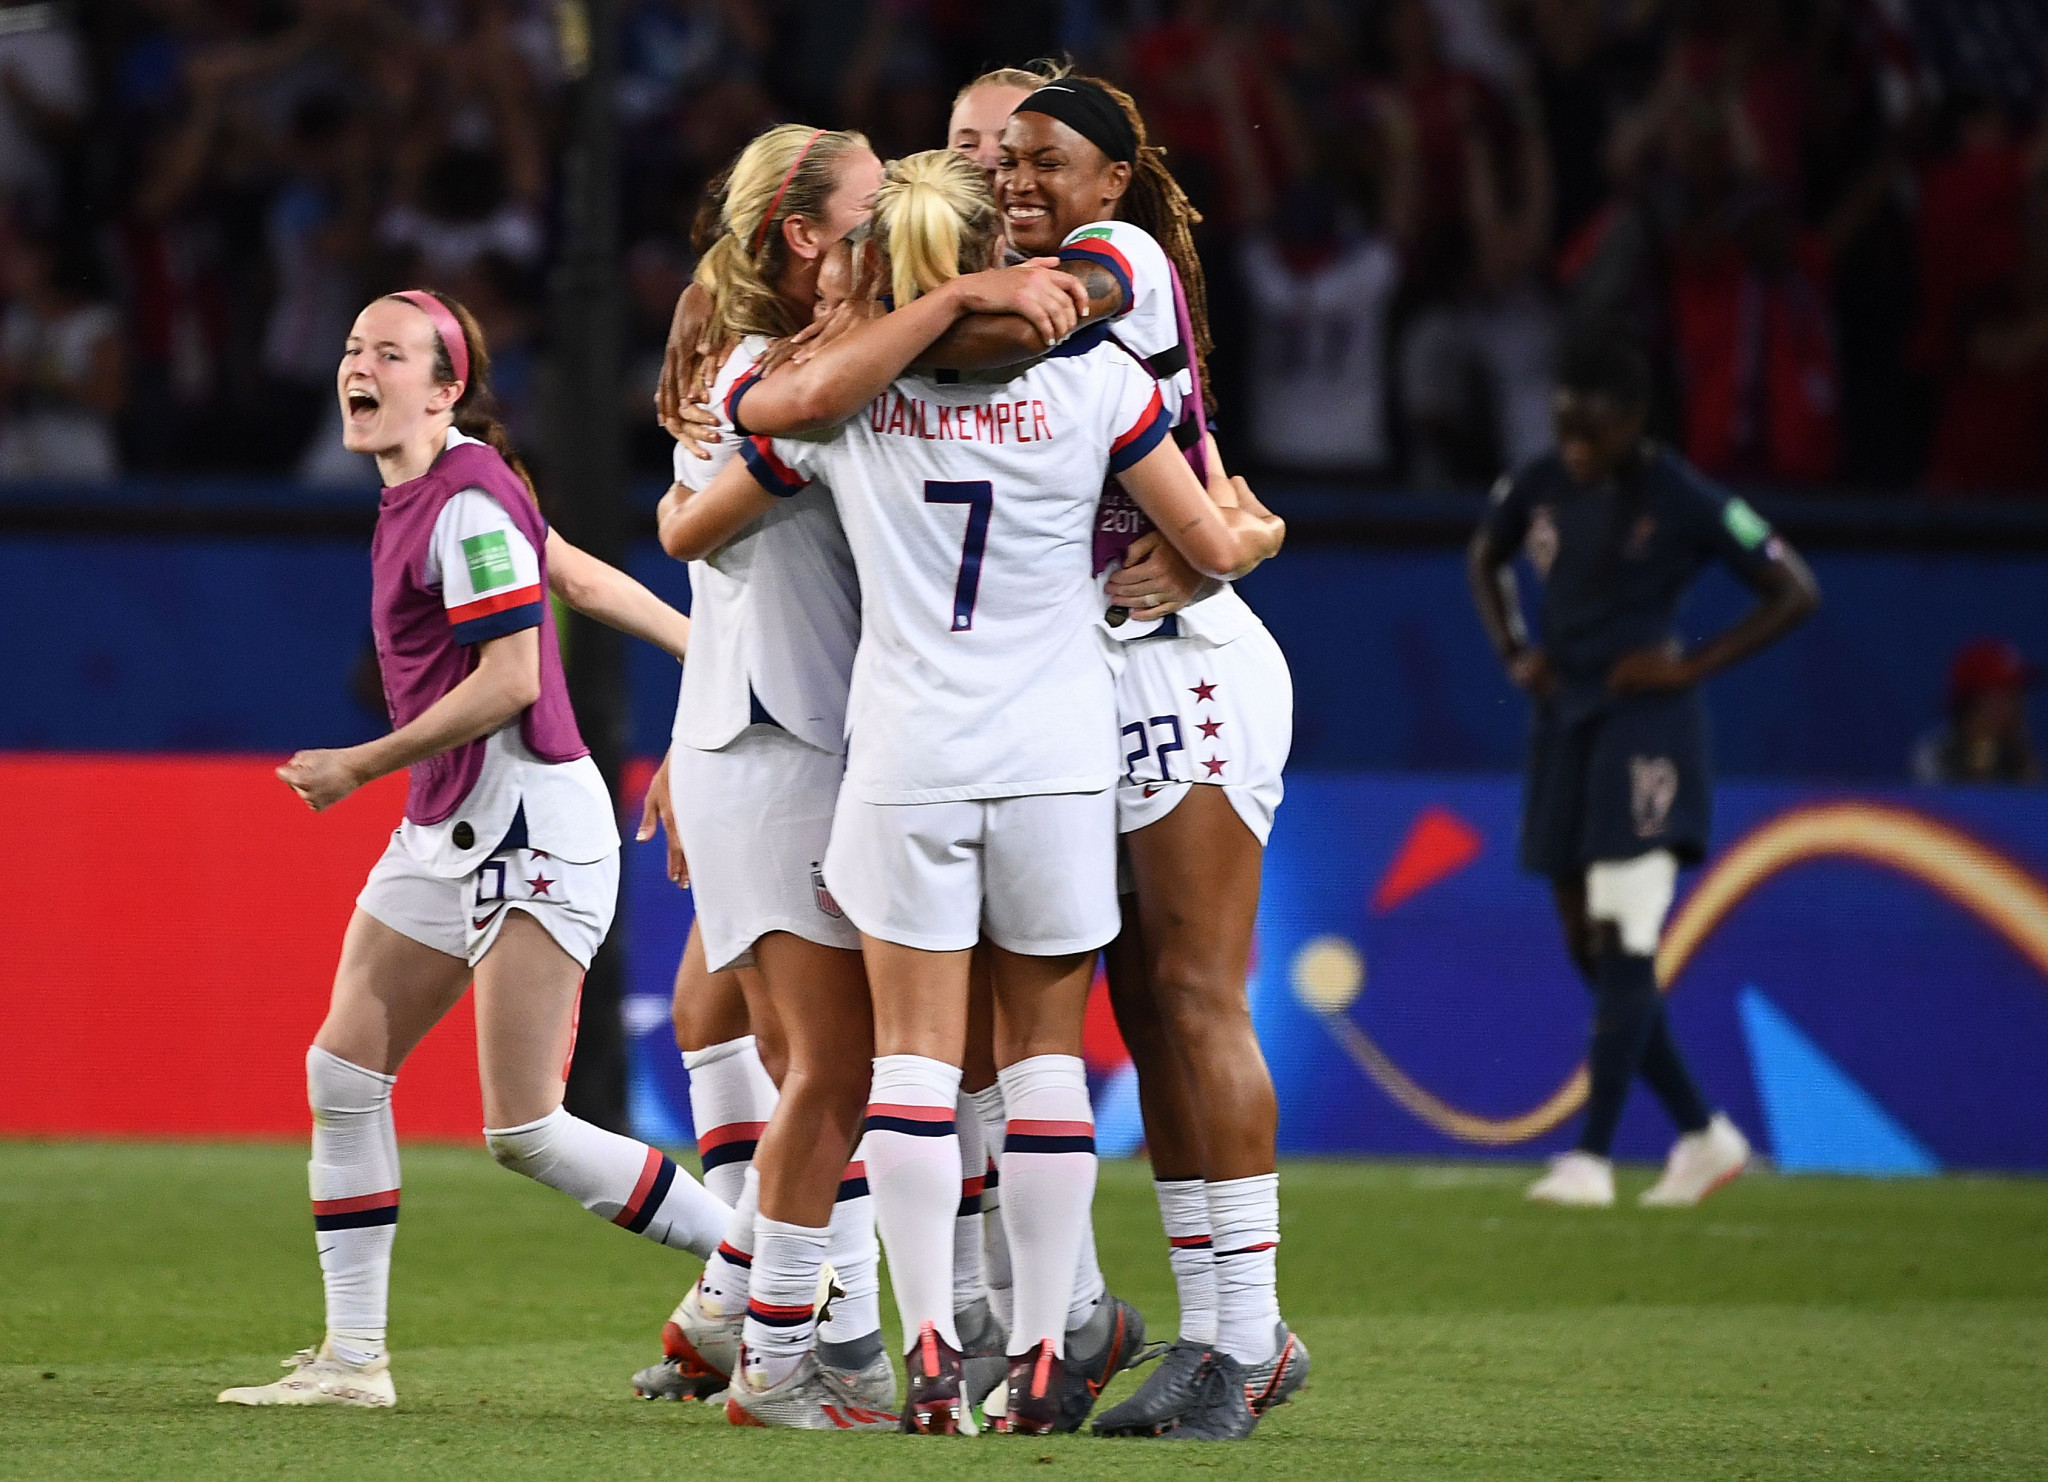 Heartbreak for hosts France as holders United States beat them to semi-final berth at FIFA Women's World Cup